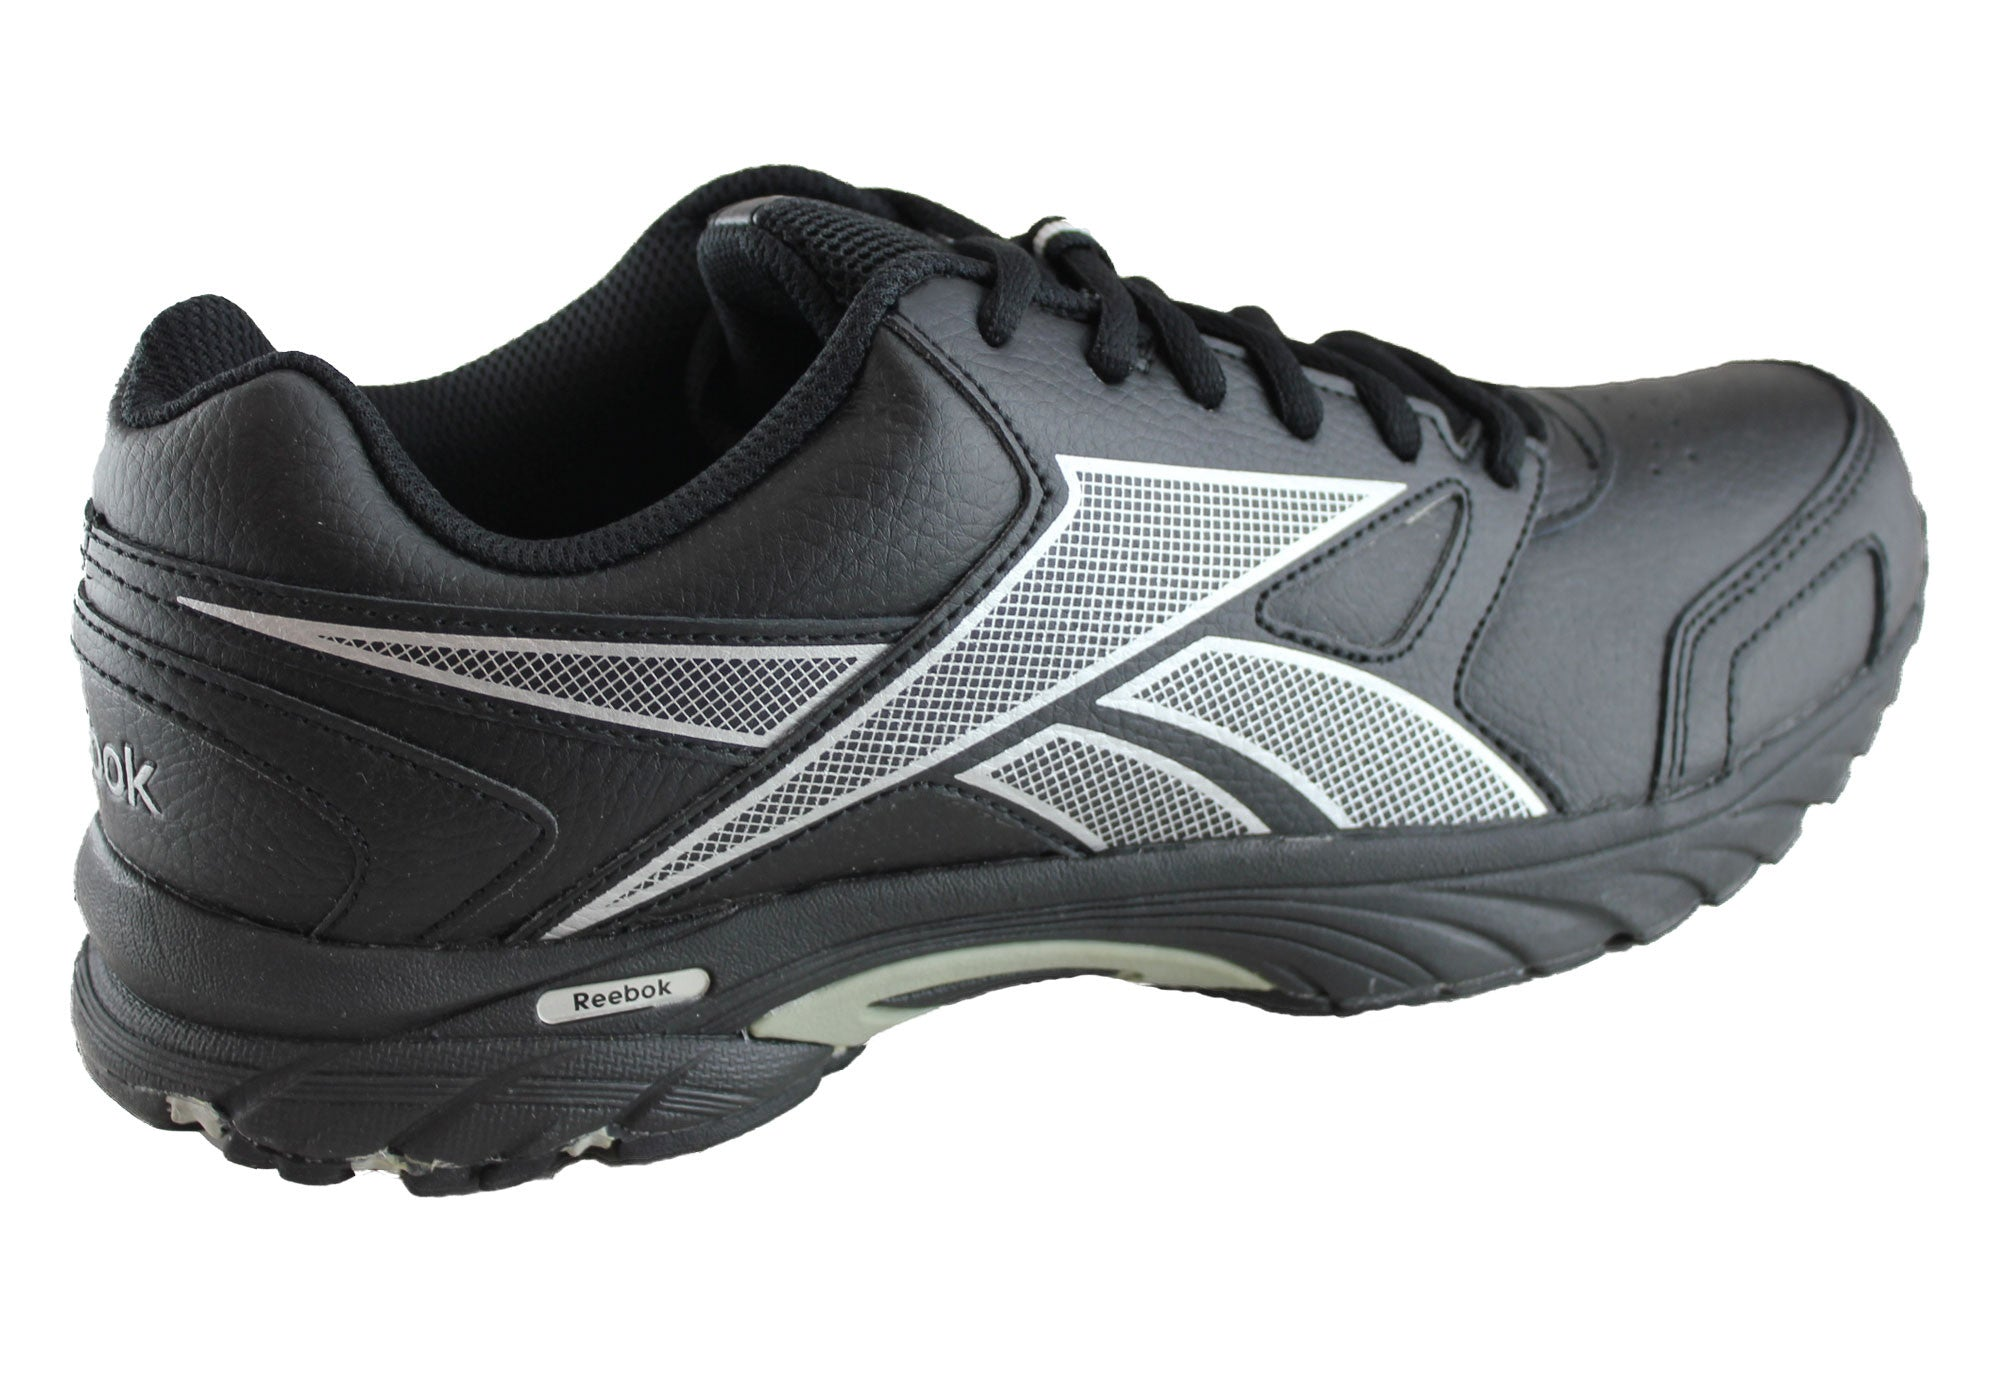 Reebok Triplehall Mens Leather Running/Walking shoes